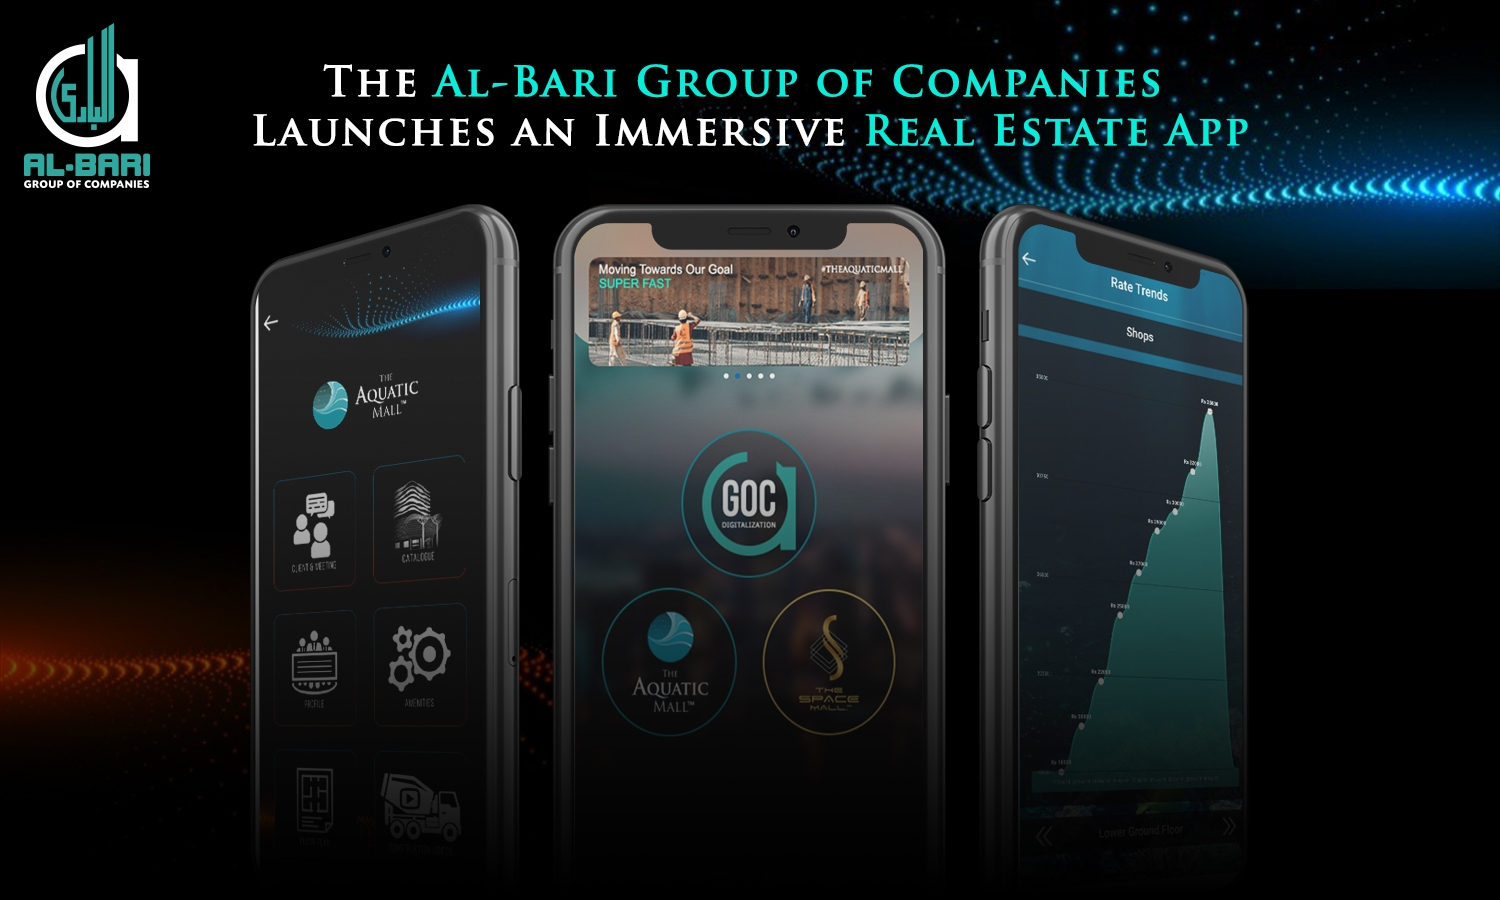 AlBari group of companies real estate app